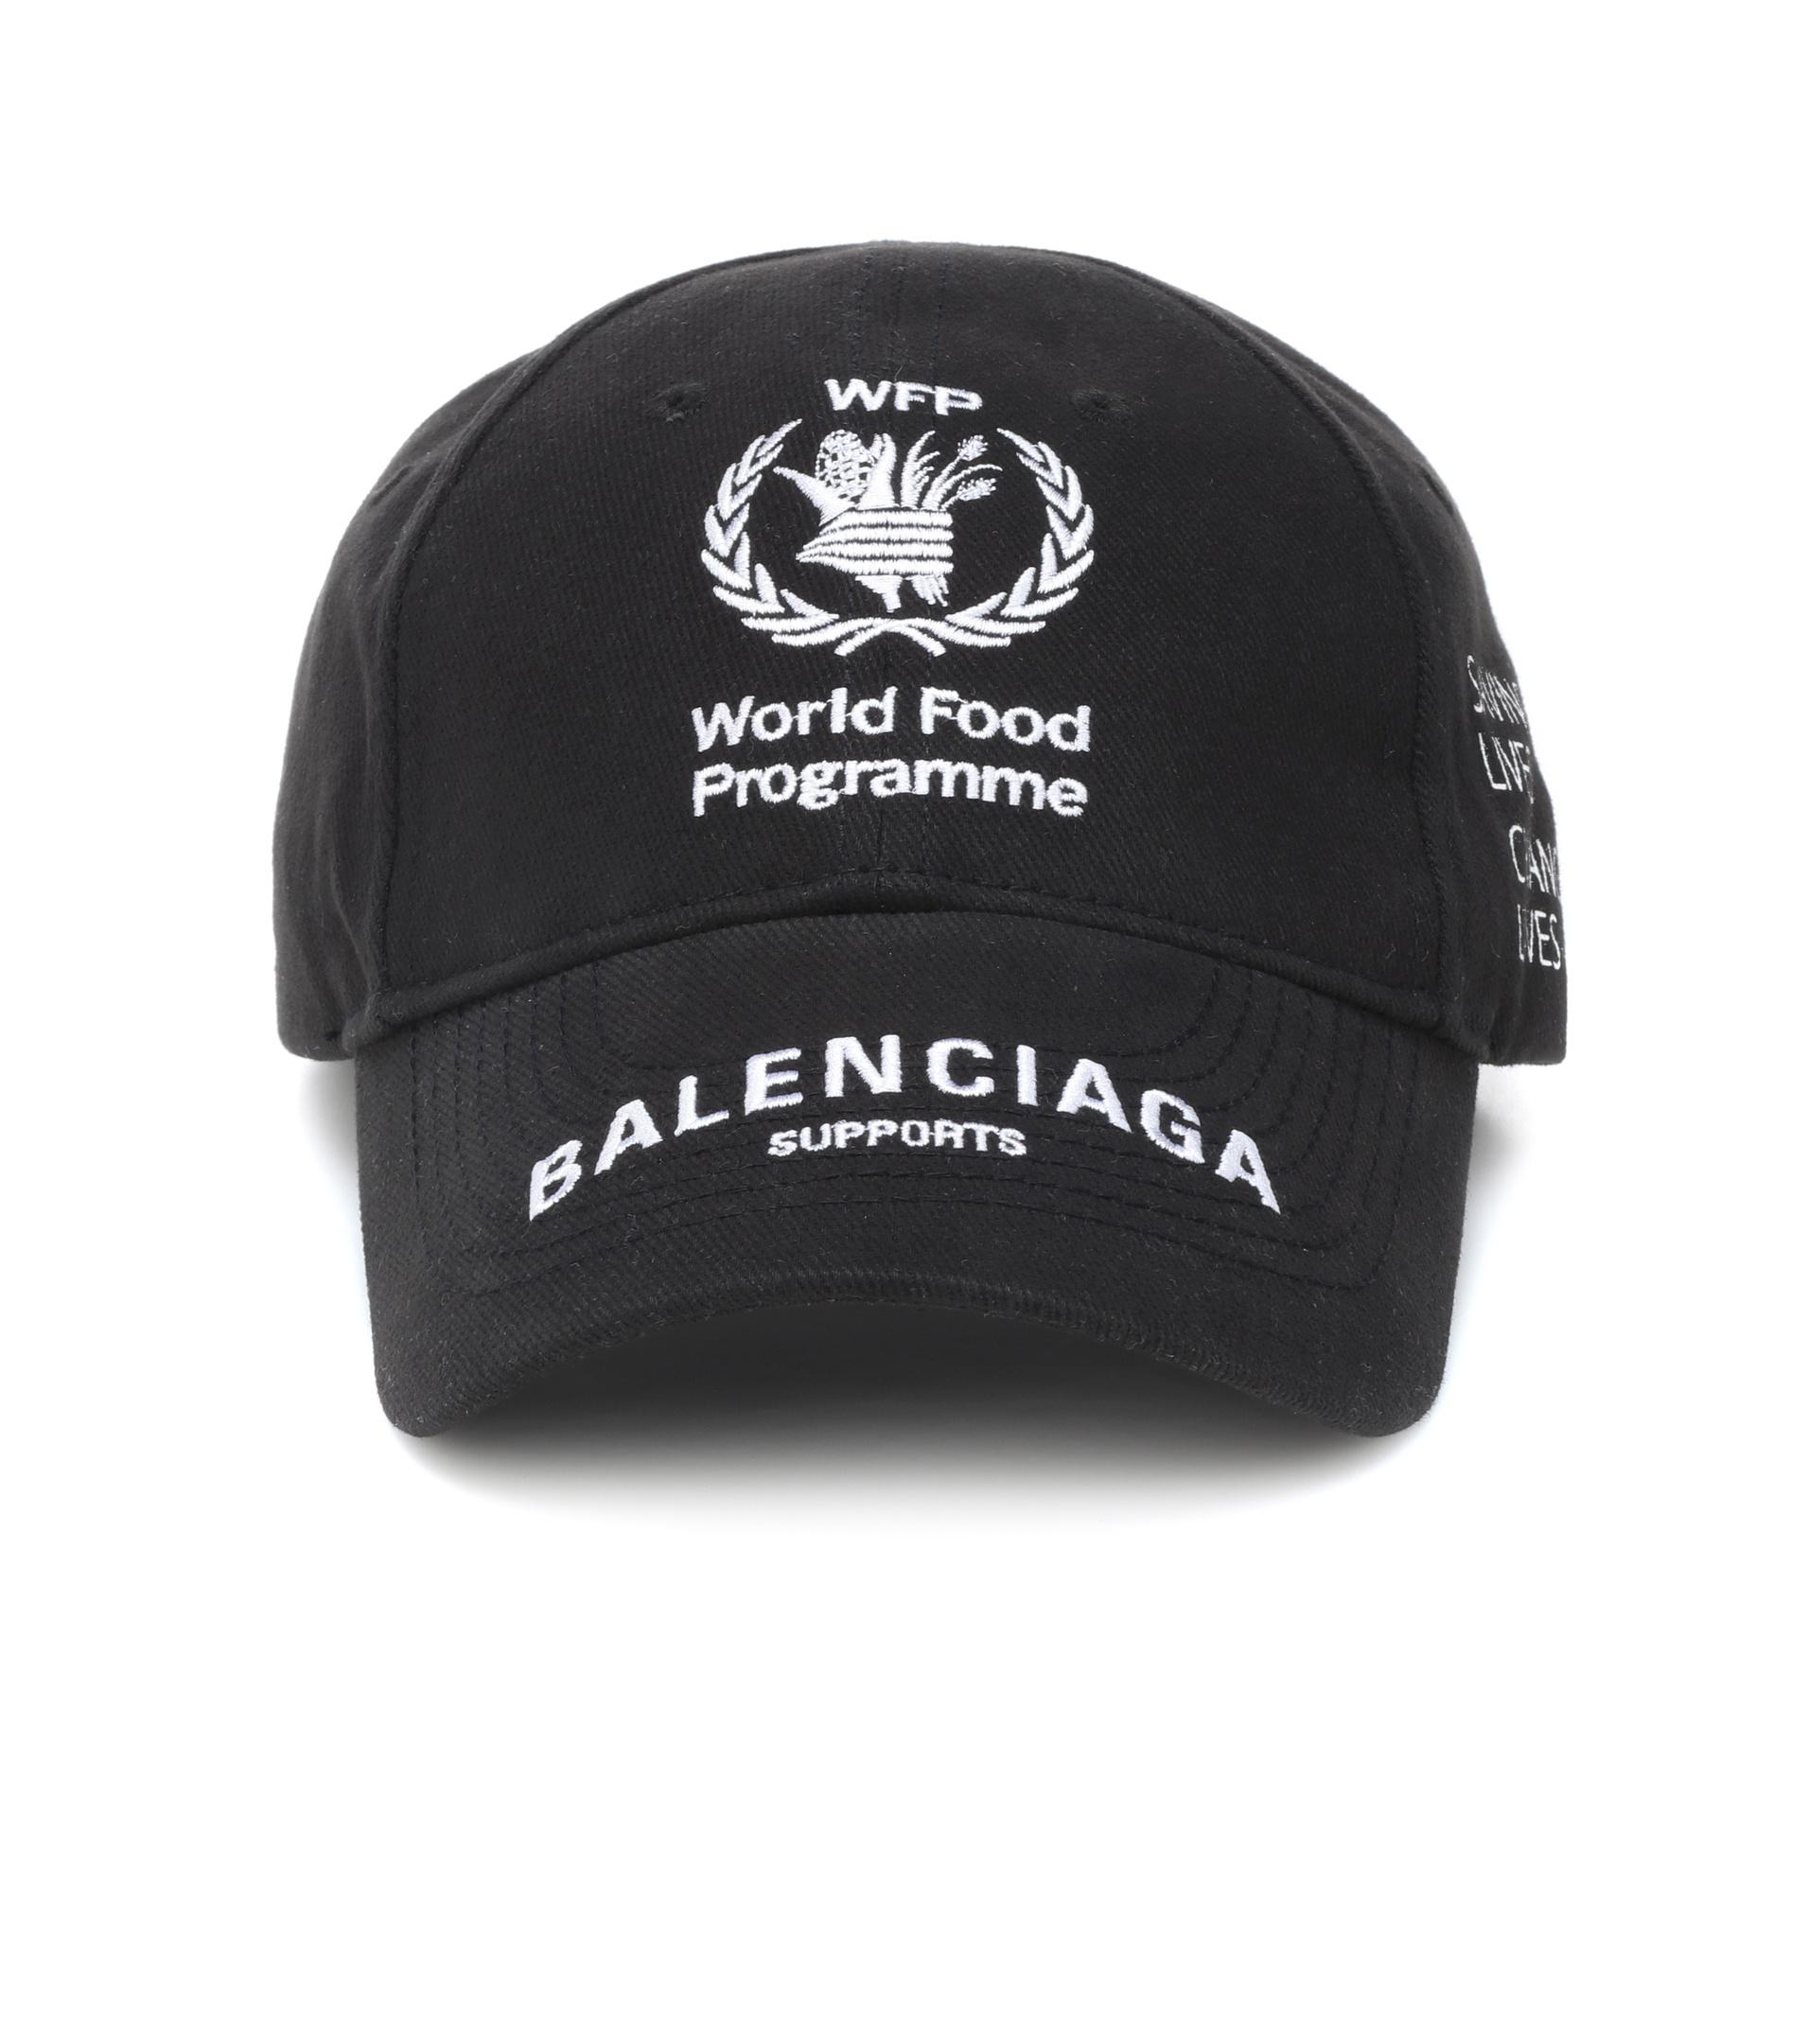 f4425852 Balenciaga World Food Programme Cap in Black - Lyst